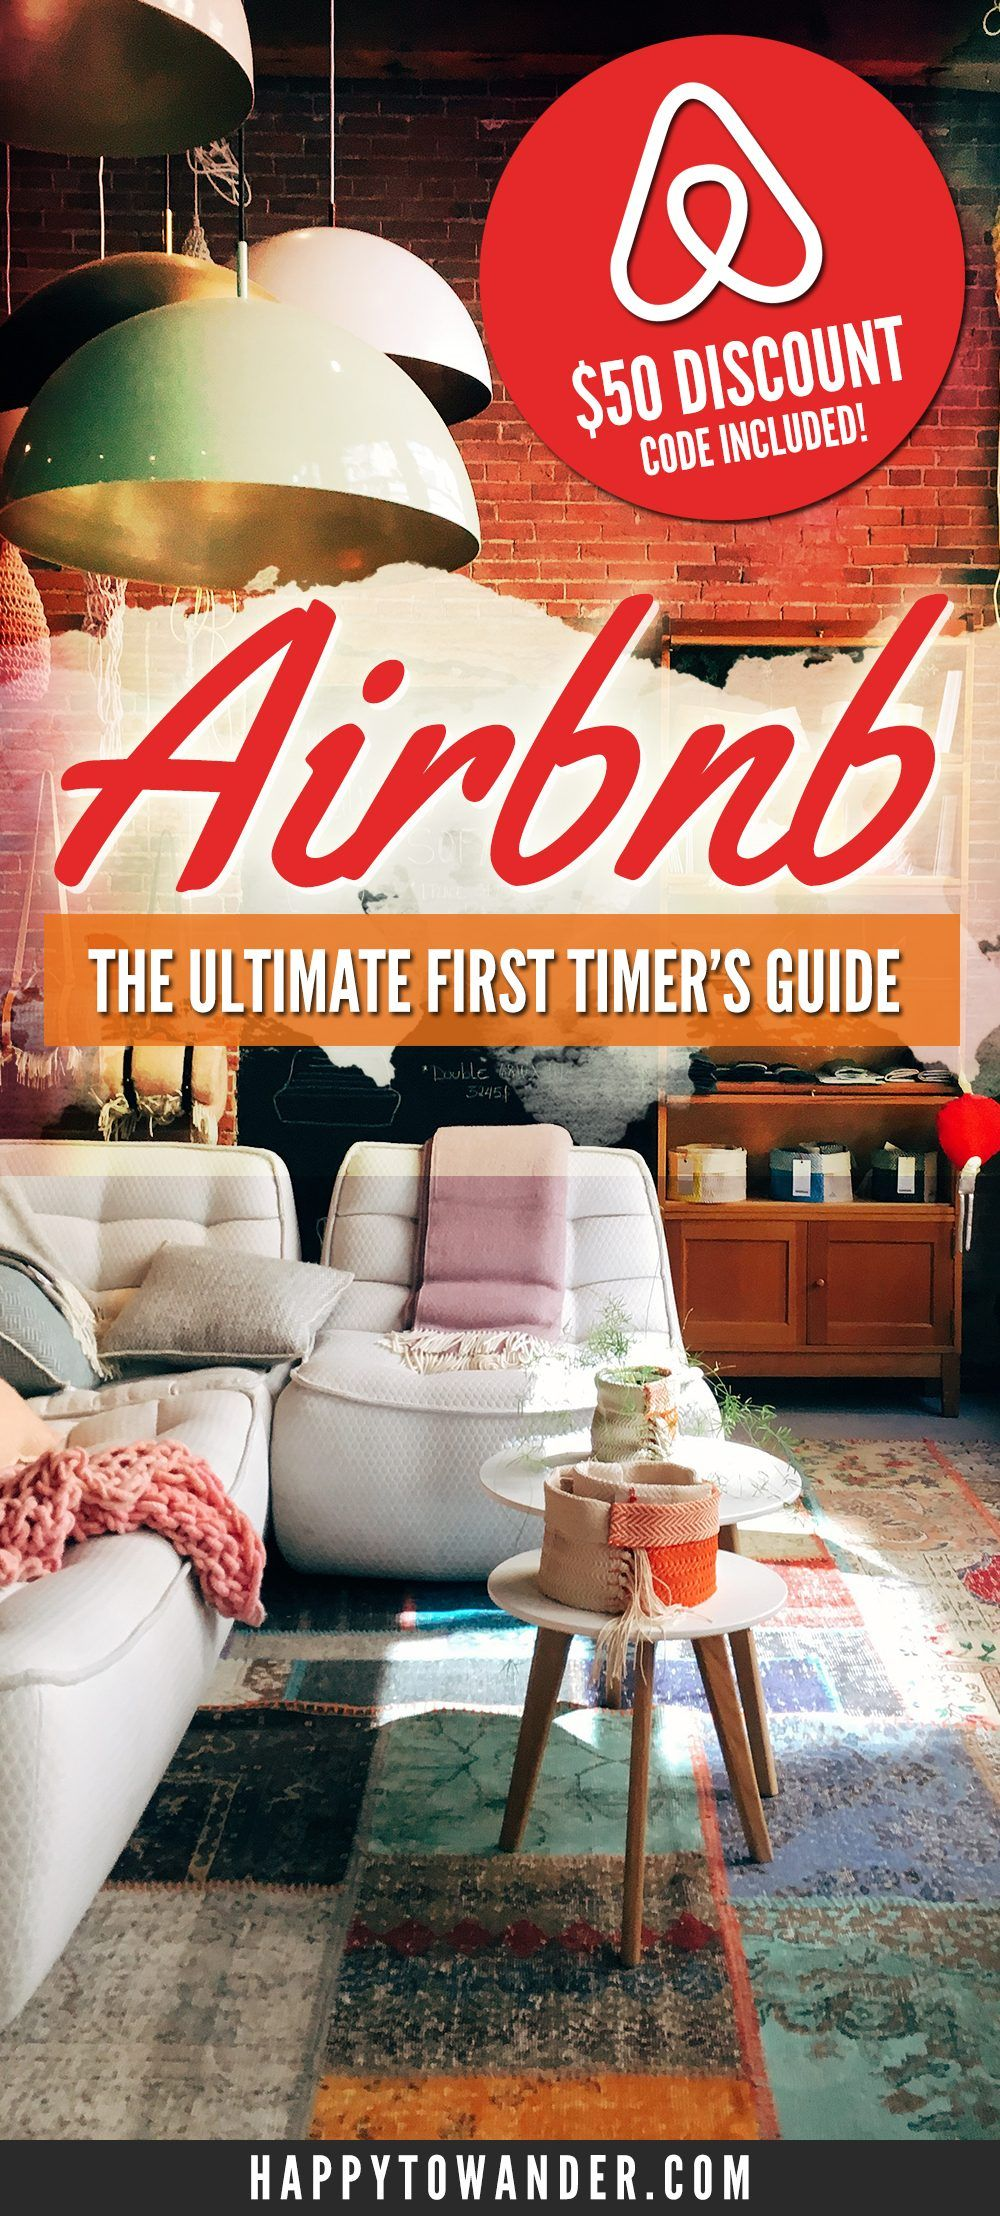 The best guide ever for beginners to AirBNB. If you want to save money when you travel, AirBNB is the best way to live like a local while saving a few bucks. This post contains a step by step on how to get started with AirBNB, alongside a coupon for your first booking!